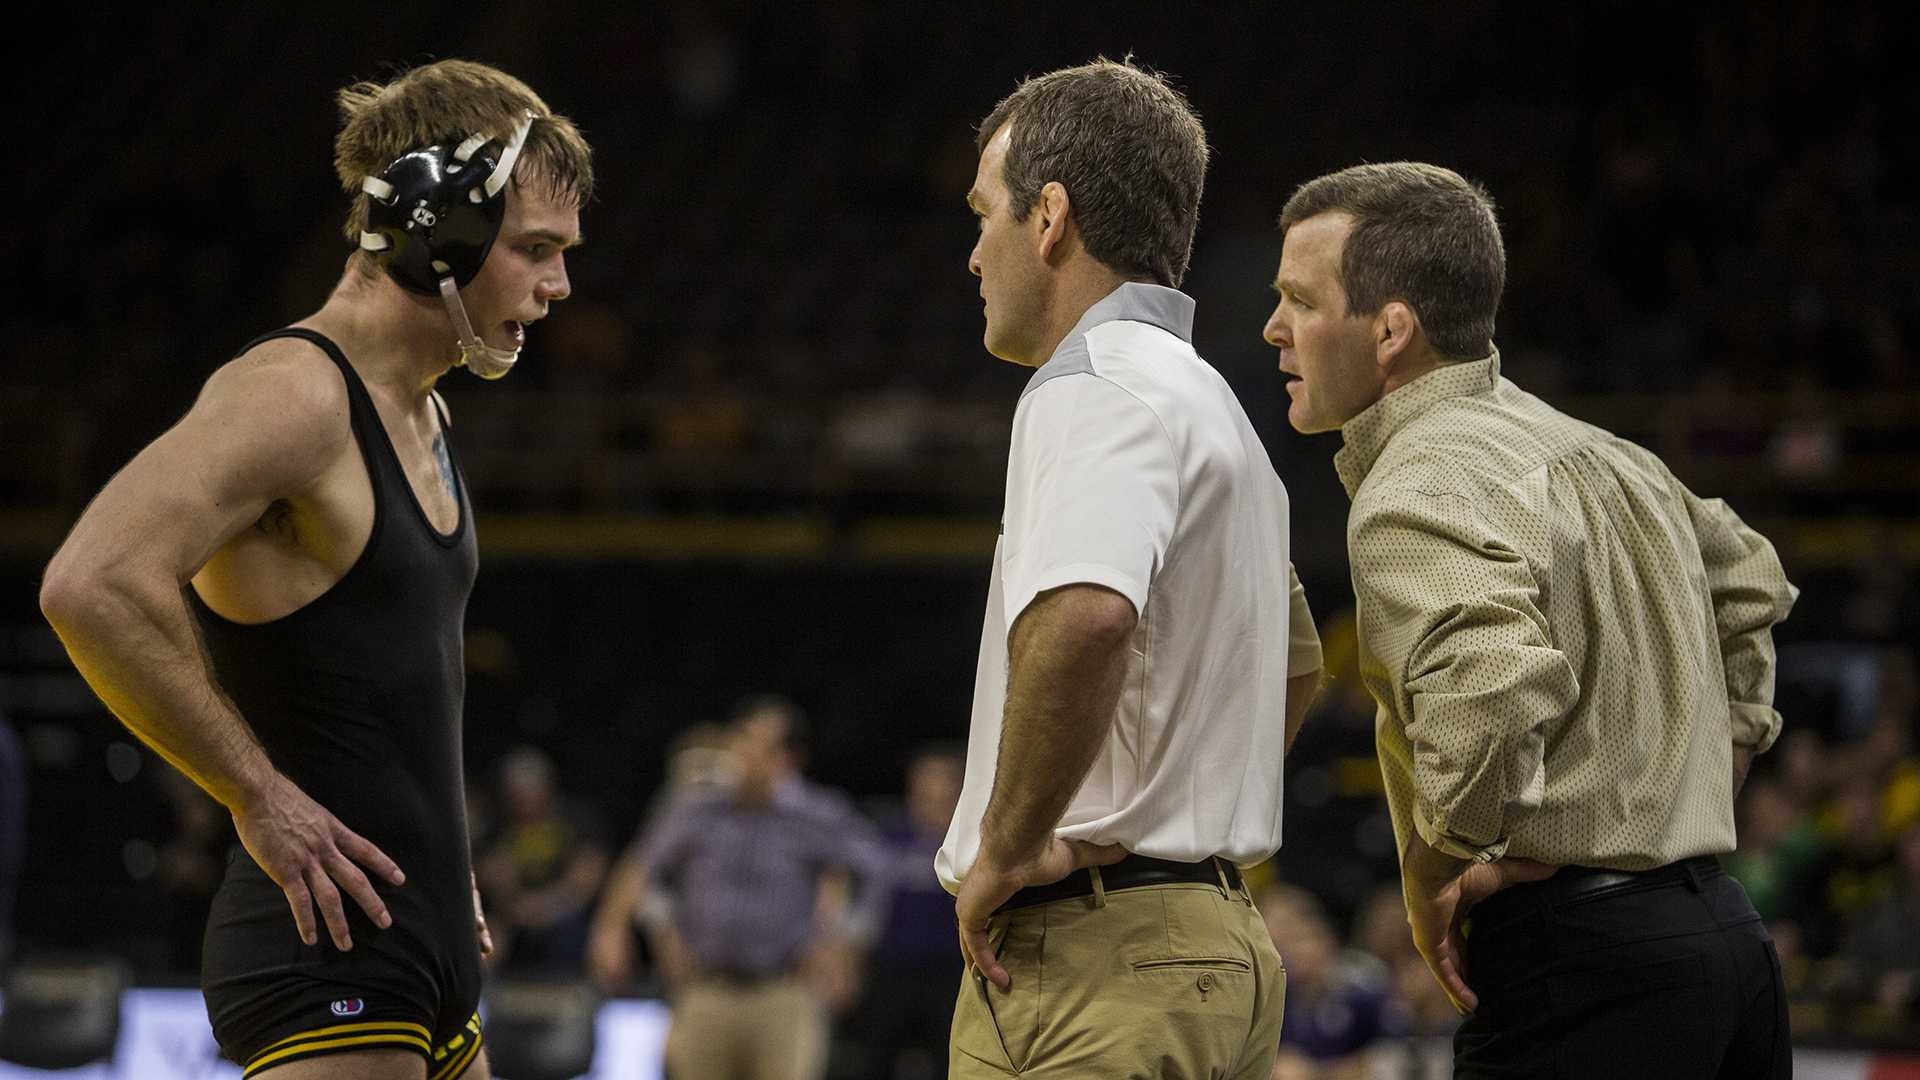 Northwestern steamrolled by Iowa wrestling